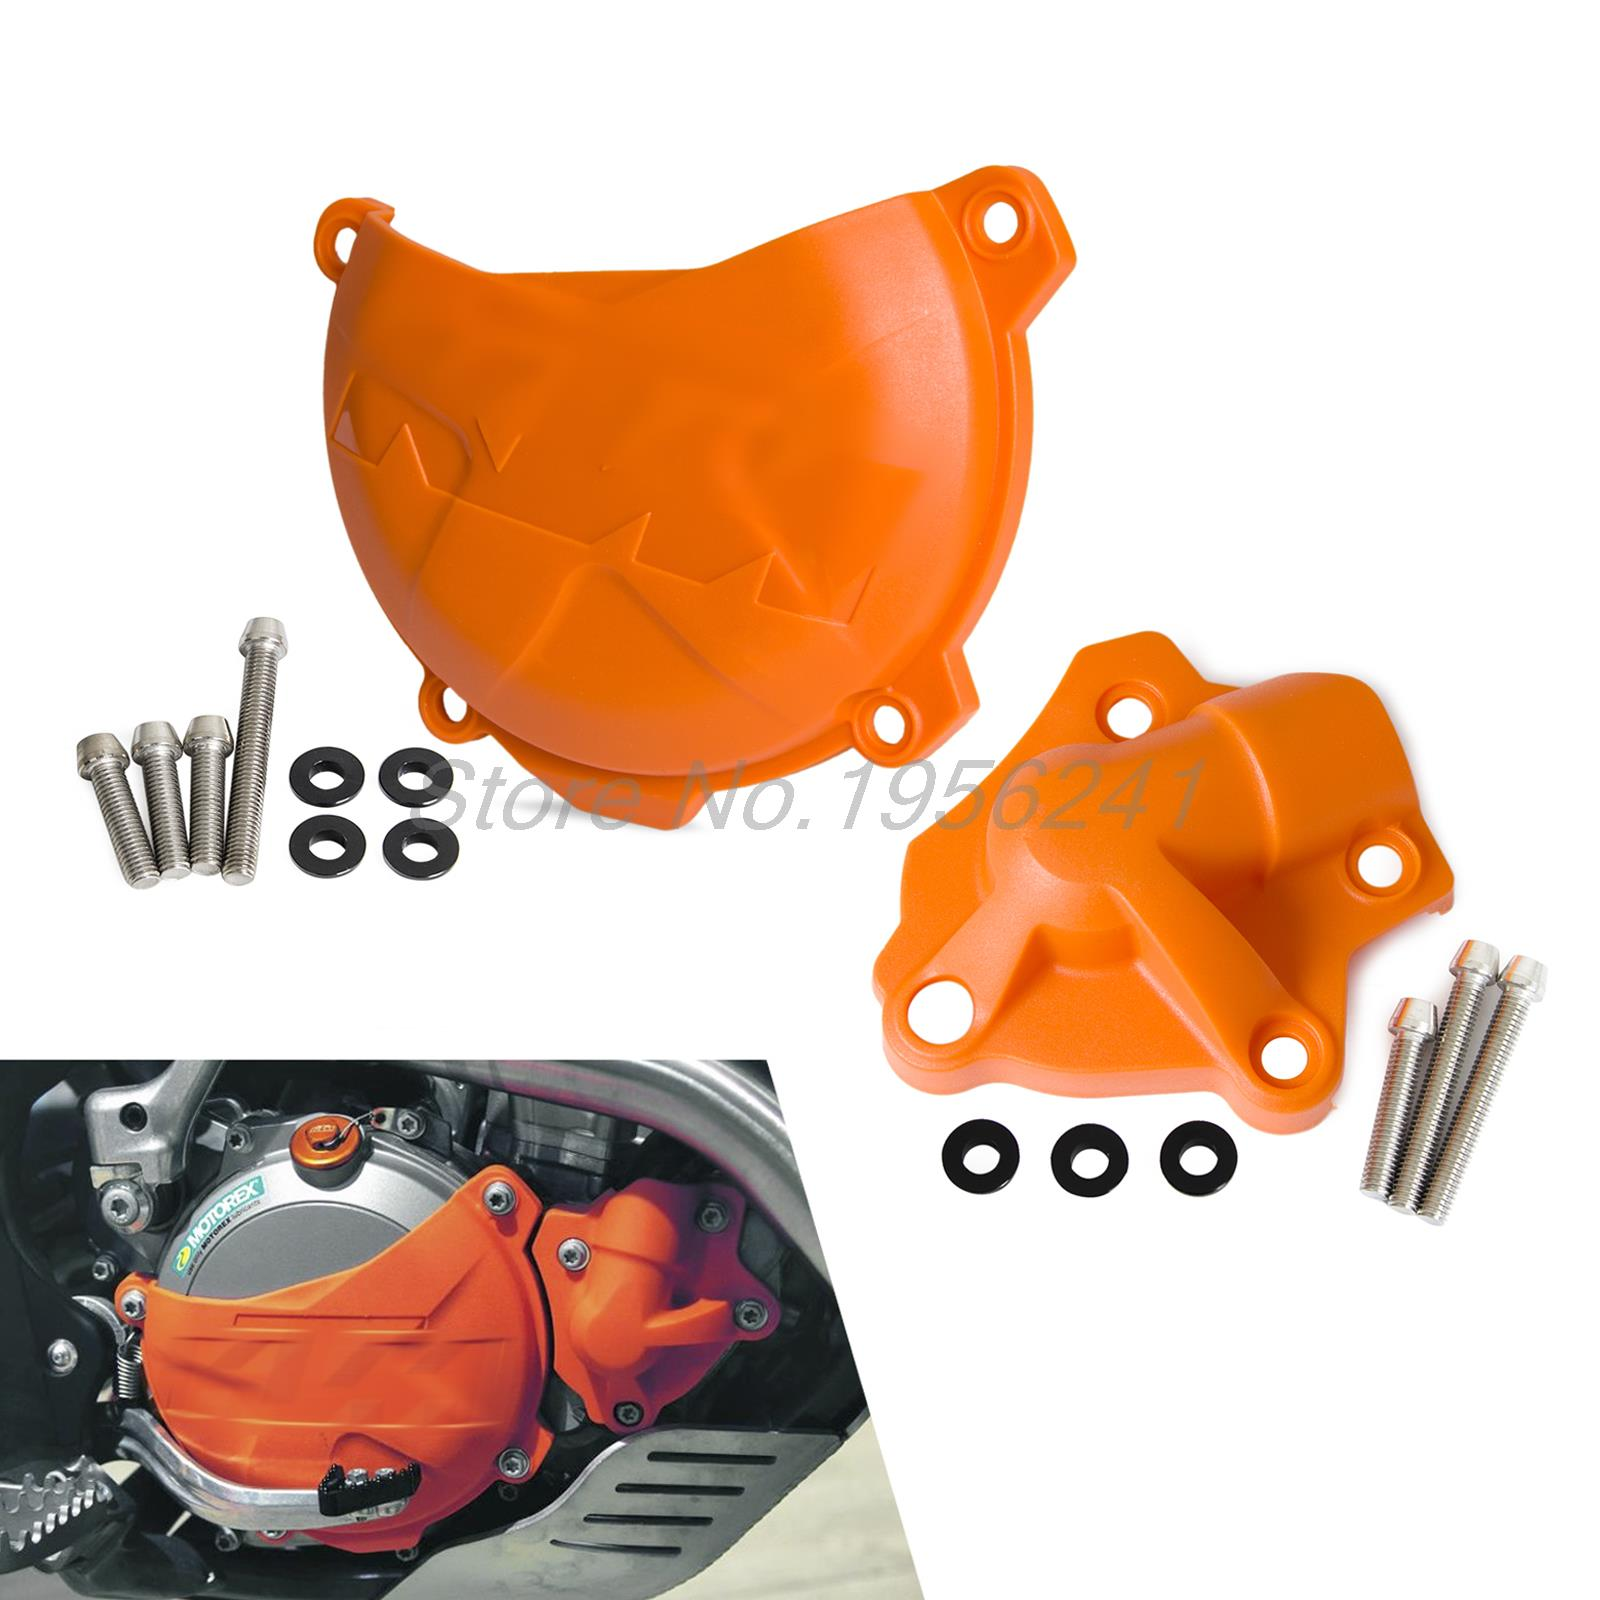 Motorcycle Clutch Cover Protection Cover Water Pump Cover Protector For KTM 250 350 FREERIDE SX-F EXC-F XC-F XCF-W SIX DAYS silencer exhaust protector can cover for ktm exc f exc sx f 450 sx f 350